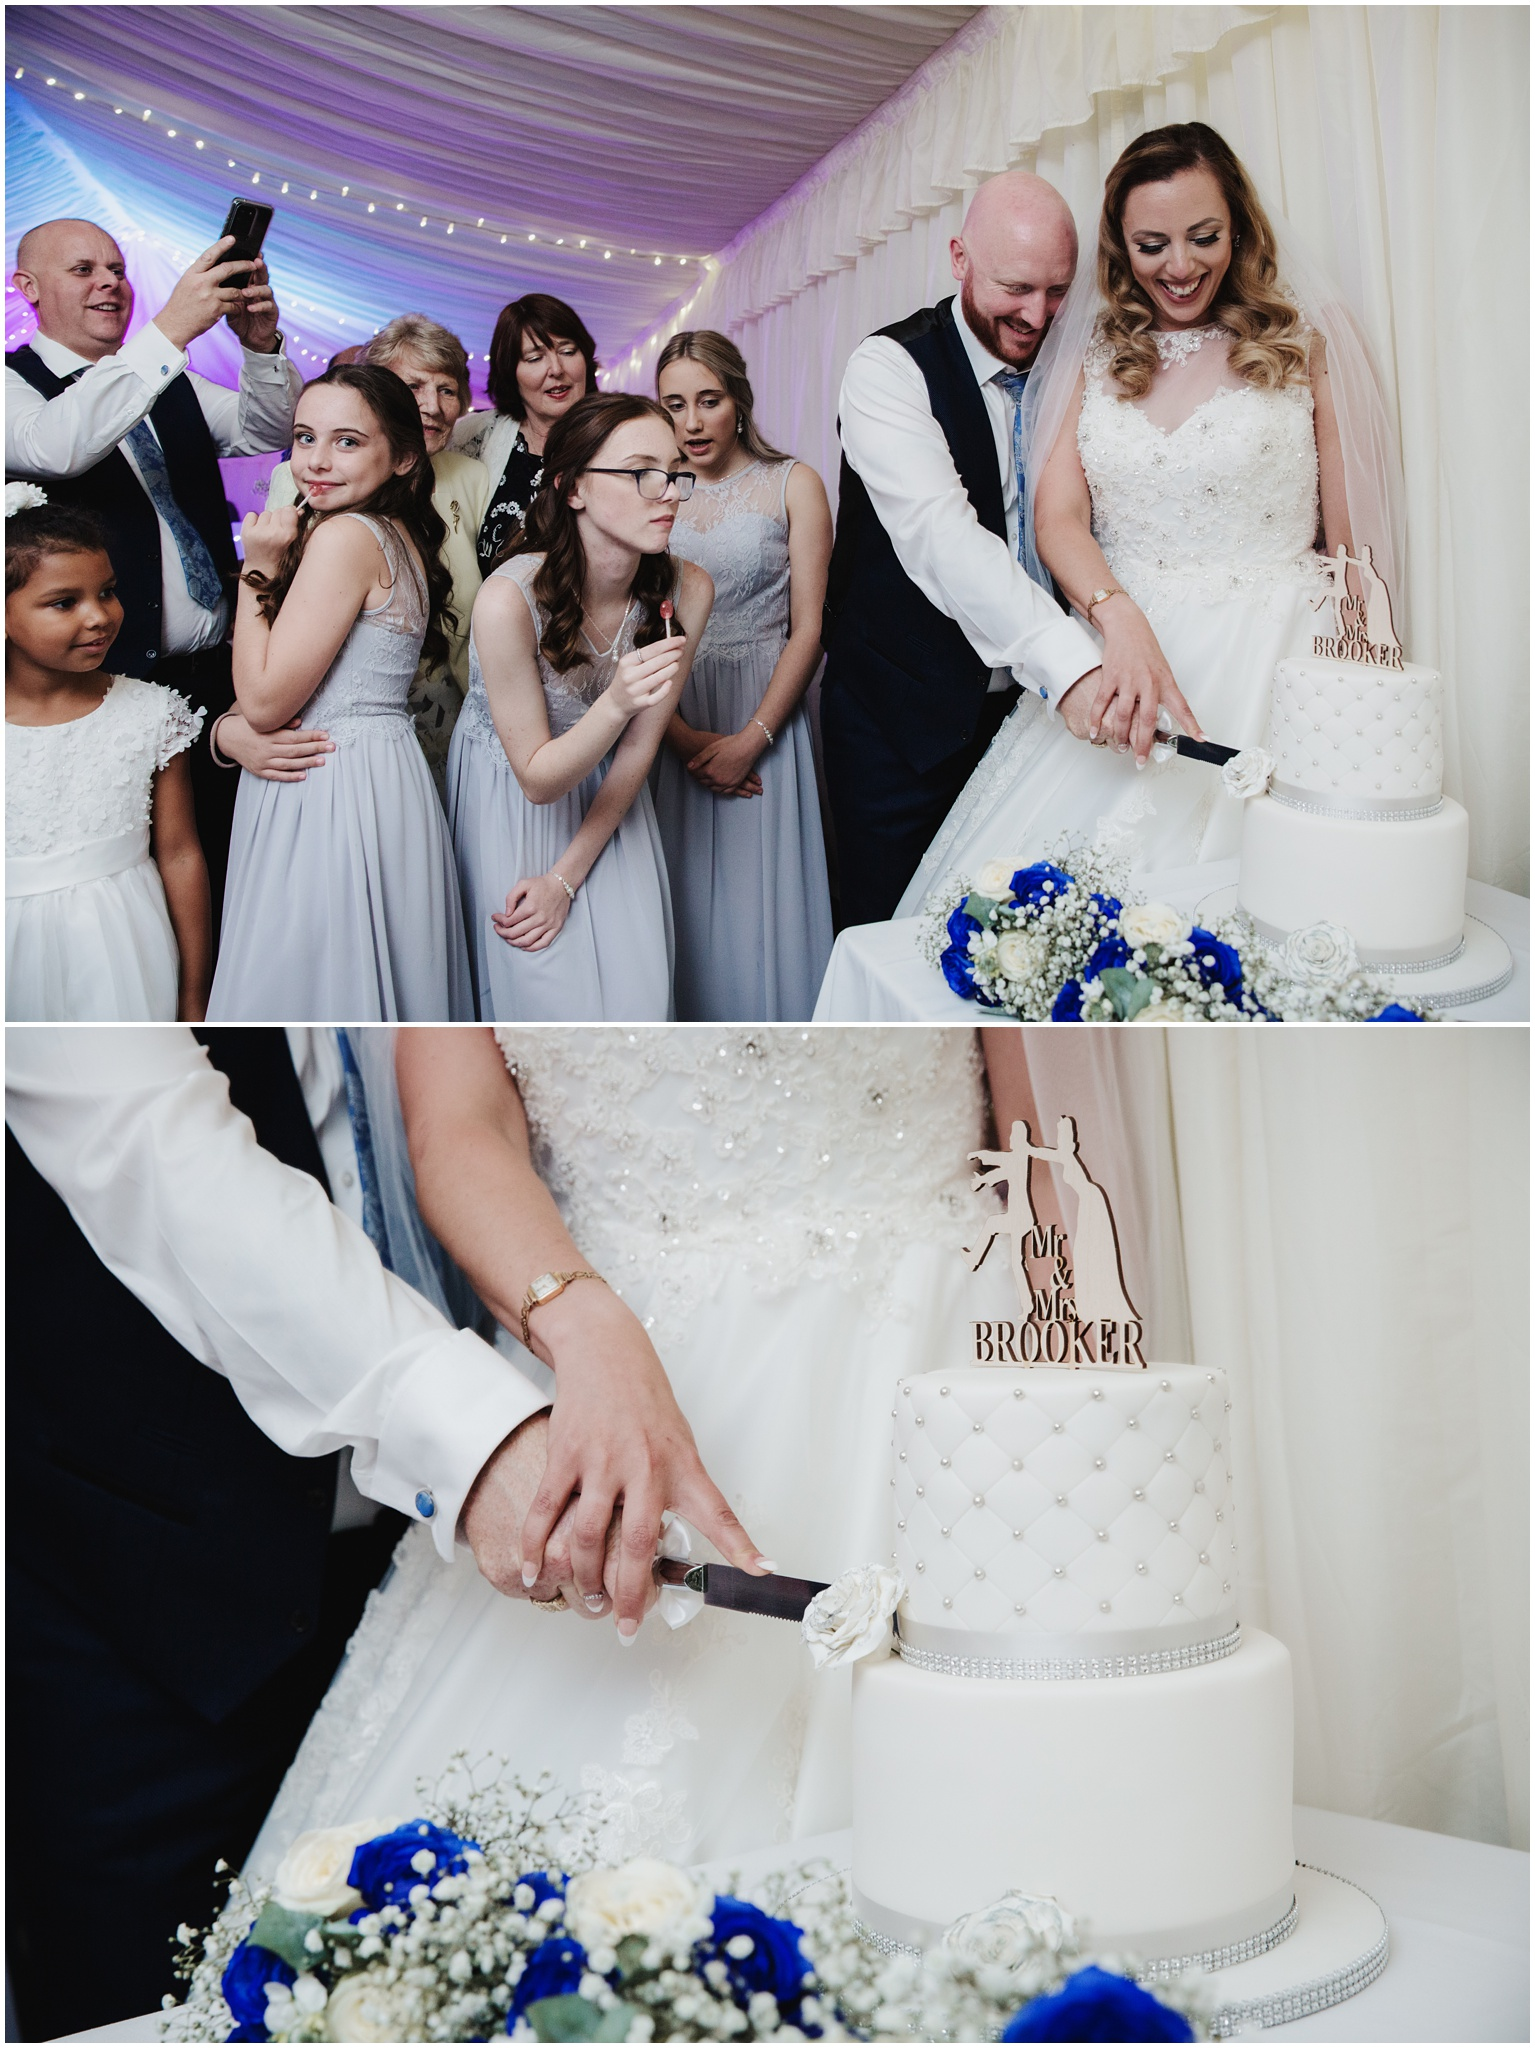 The Rochford Hotel wedding photography - Cutting of the cake